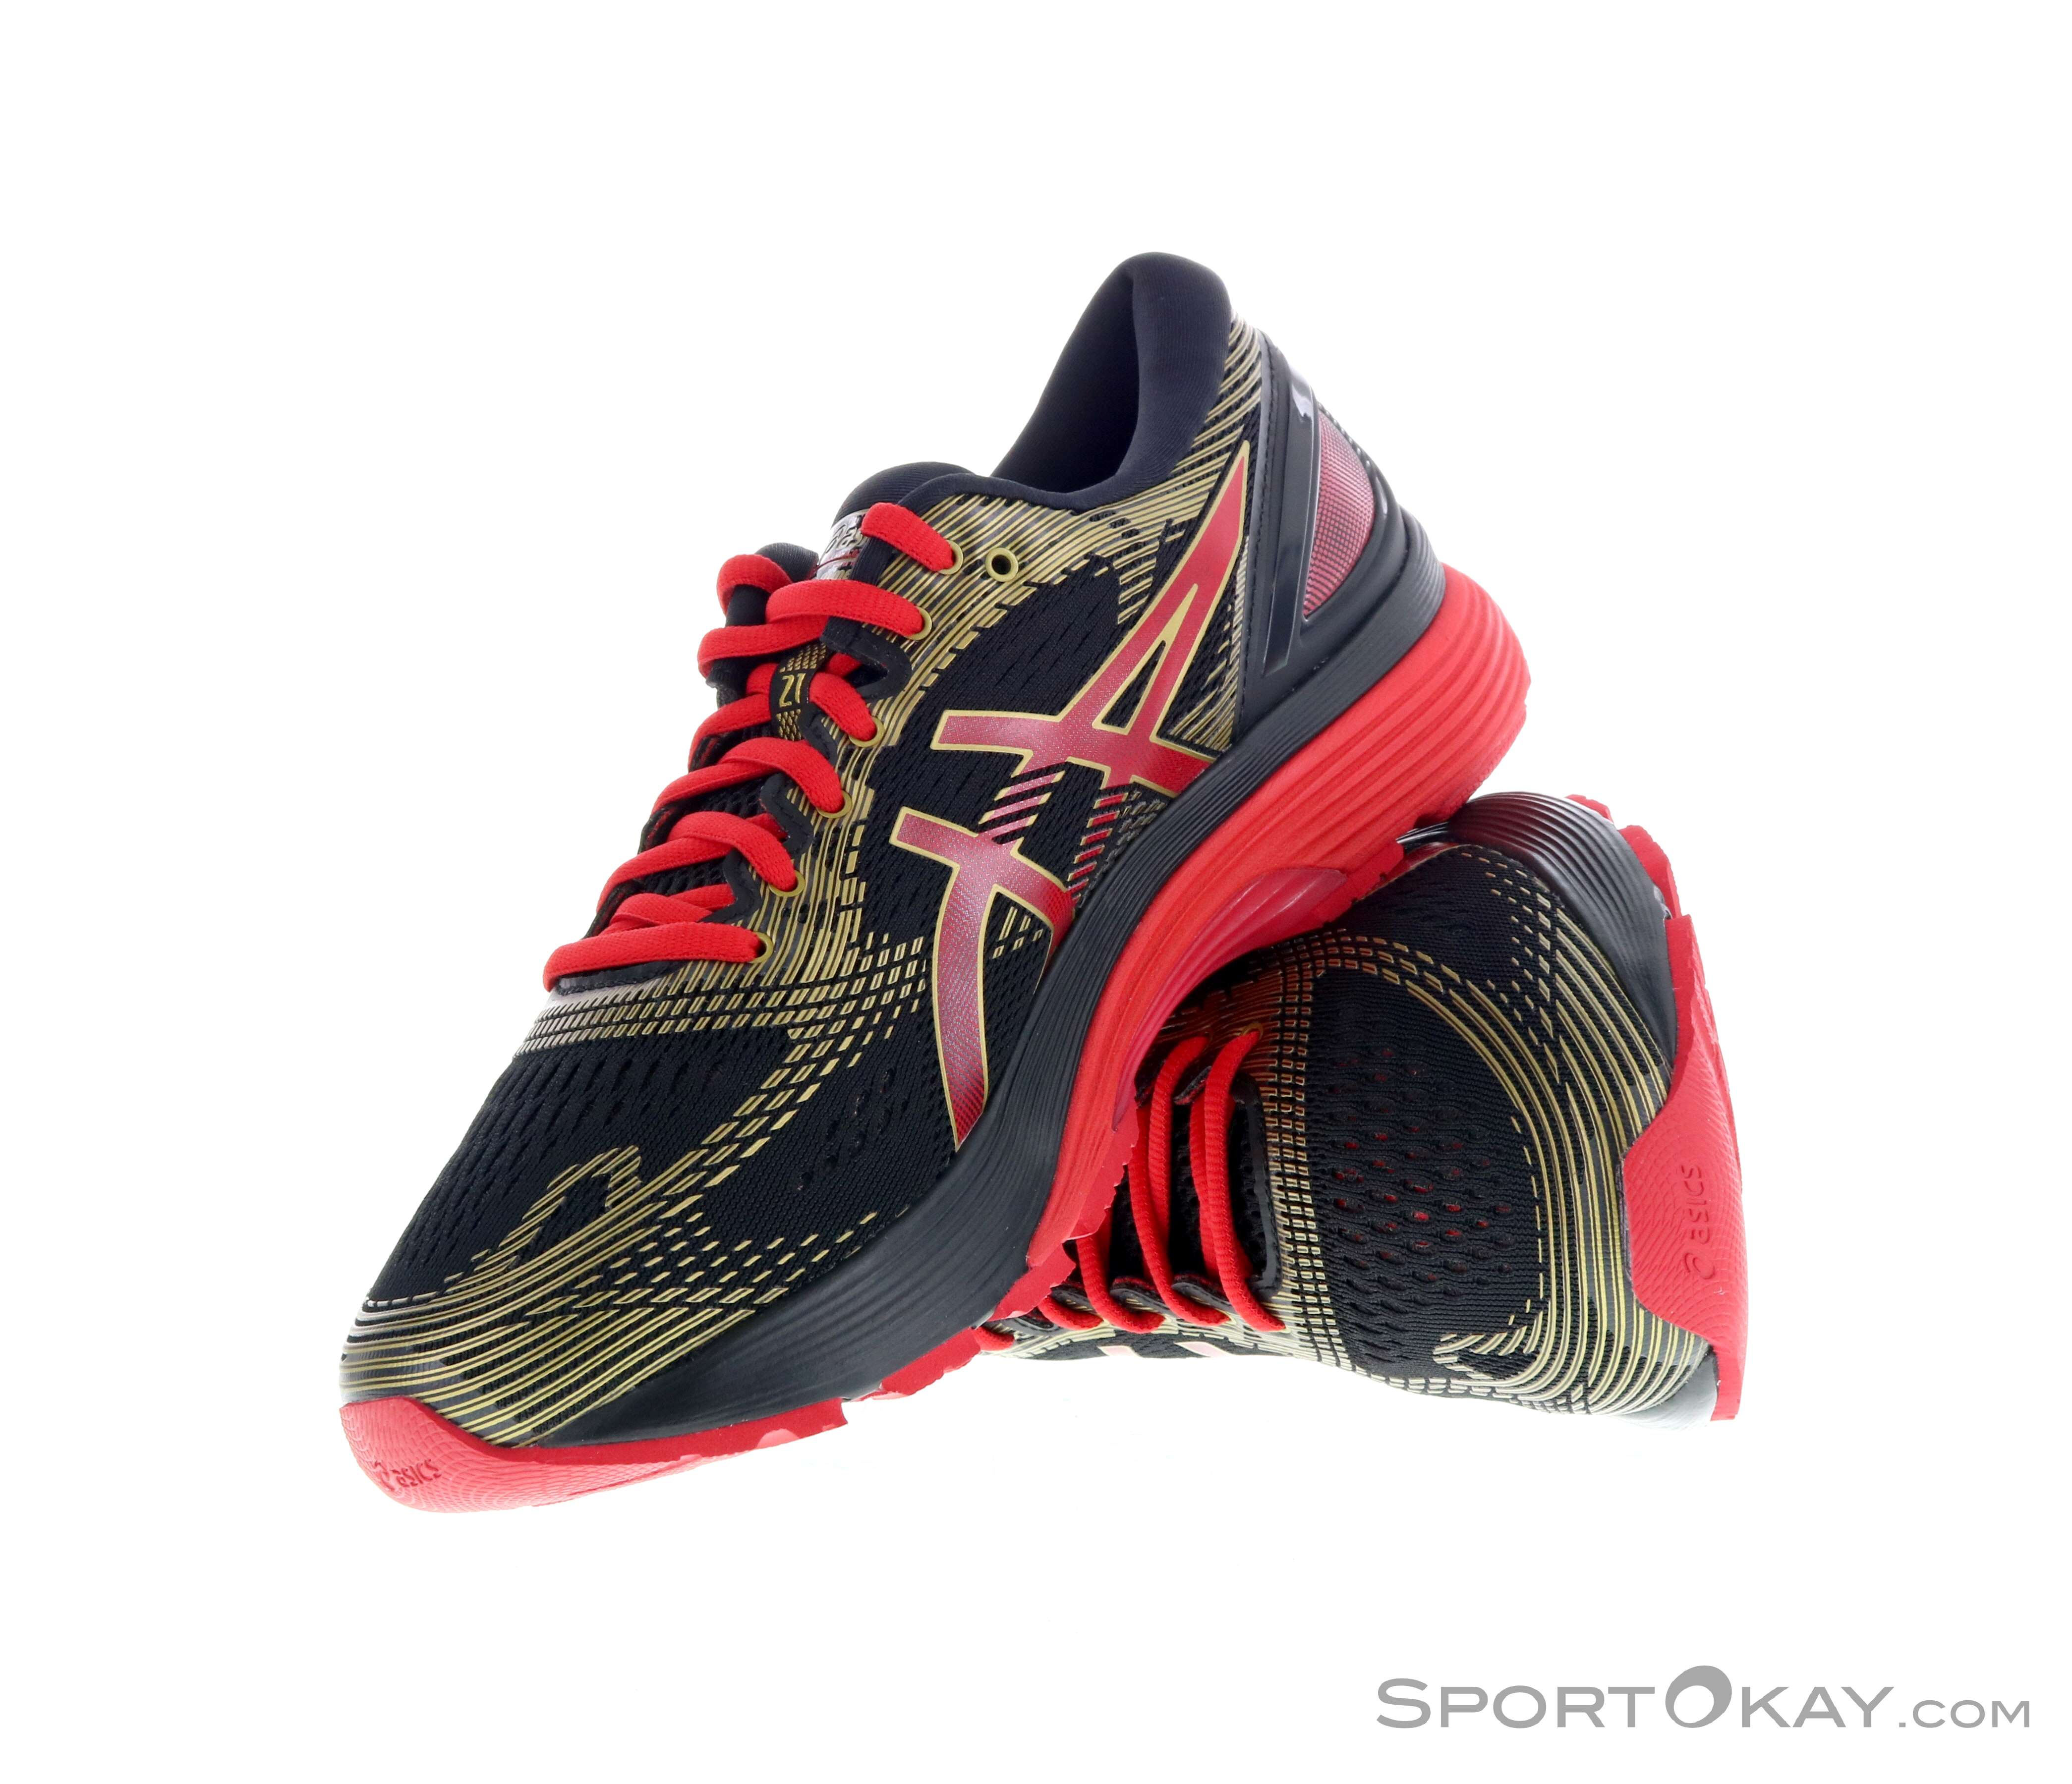 Asics Gel Nimbus 21 Mens Running Shoes All Round Running